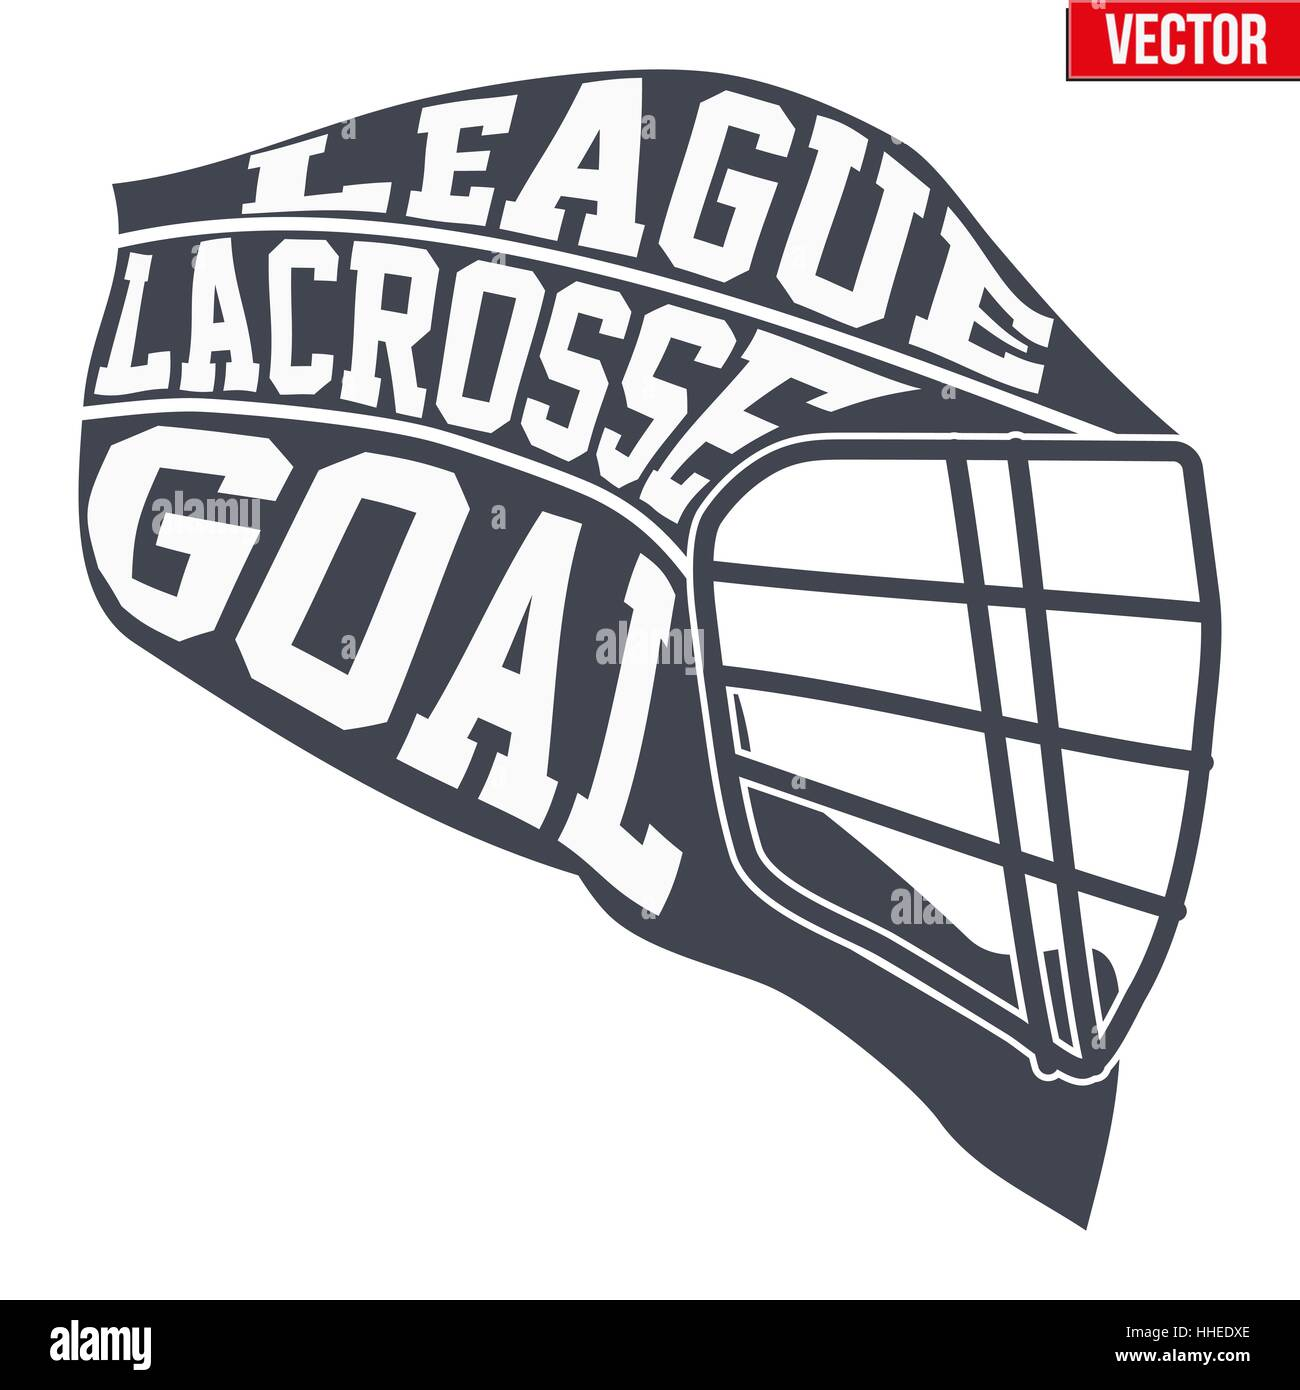 Lacrosse Team Stock Vector Images - Alamy